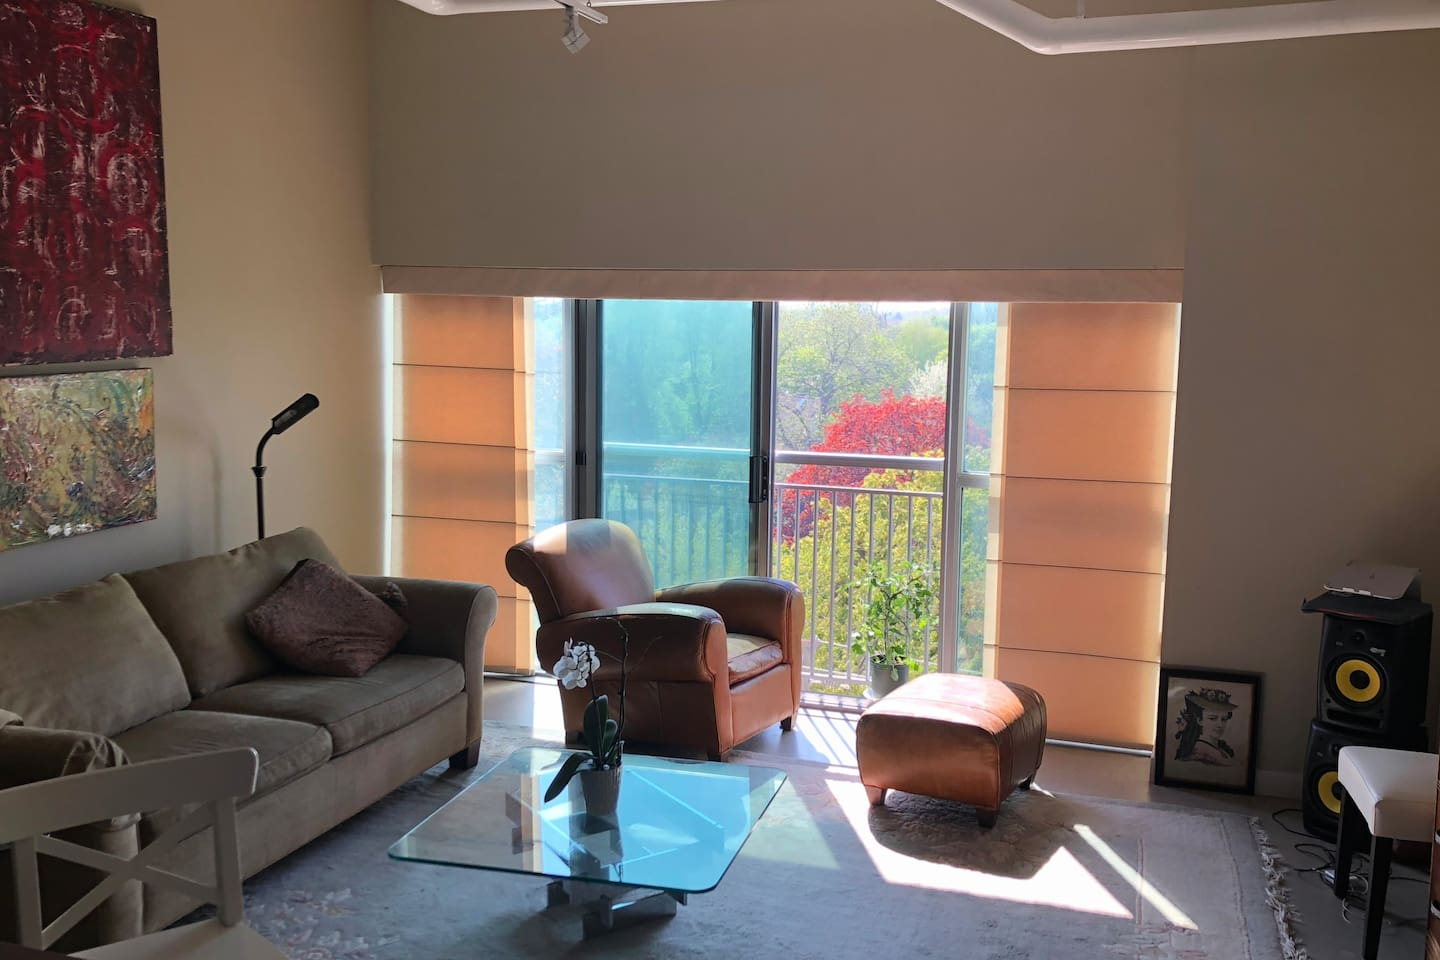 Large, Bright 2 Bedroom Loft in Upscale Kingsway Neighbourhood 25 minutes from Downtown on Transit that is steps away